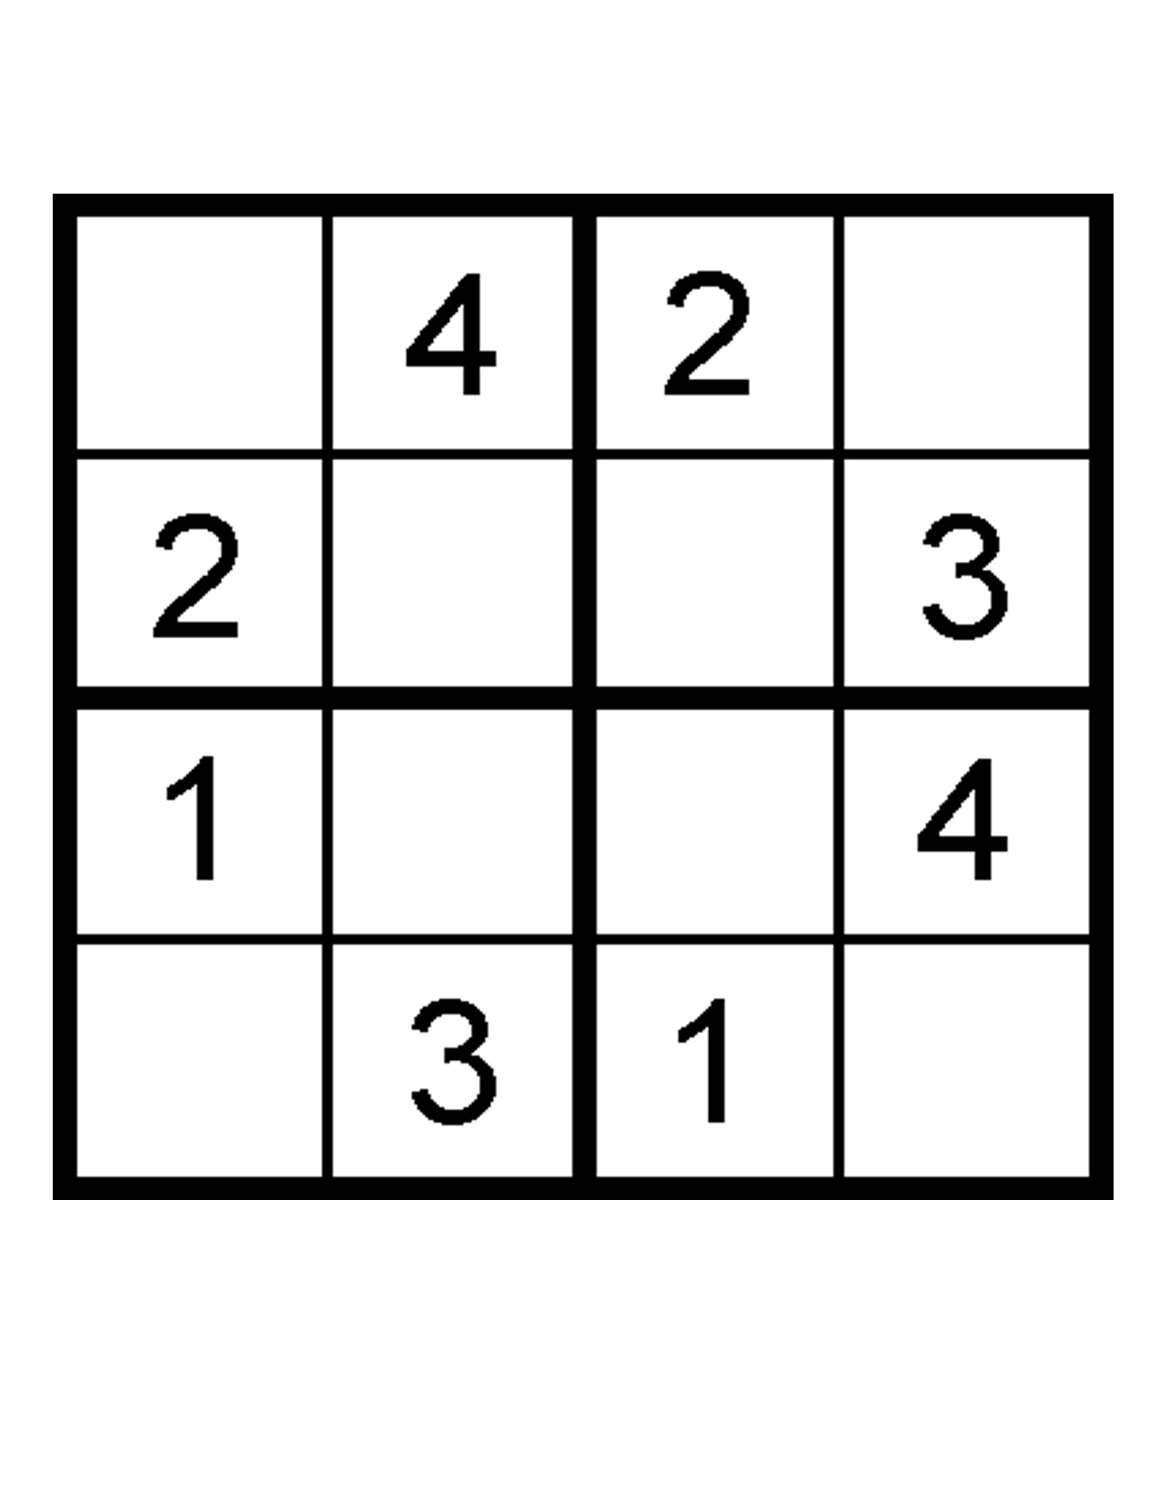 Play Free Sudoku a Popular Online Puzzle Game  Play Free